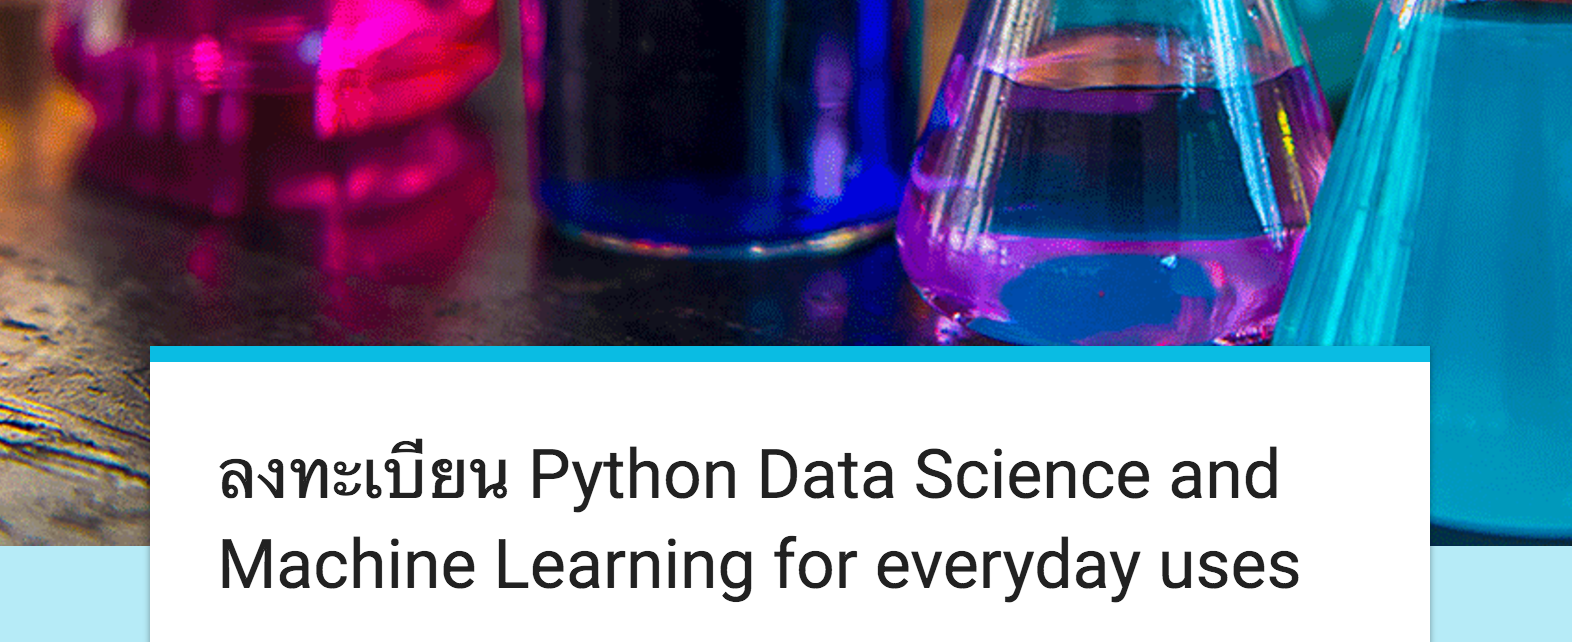 Python Data Science and Machine Learning Meetup at Hangar